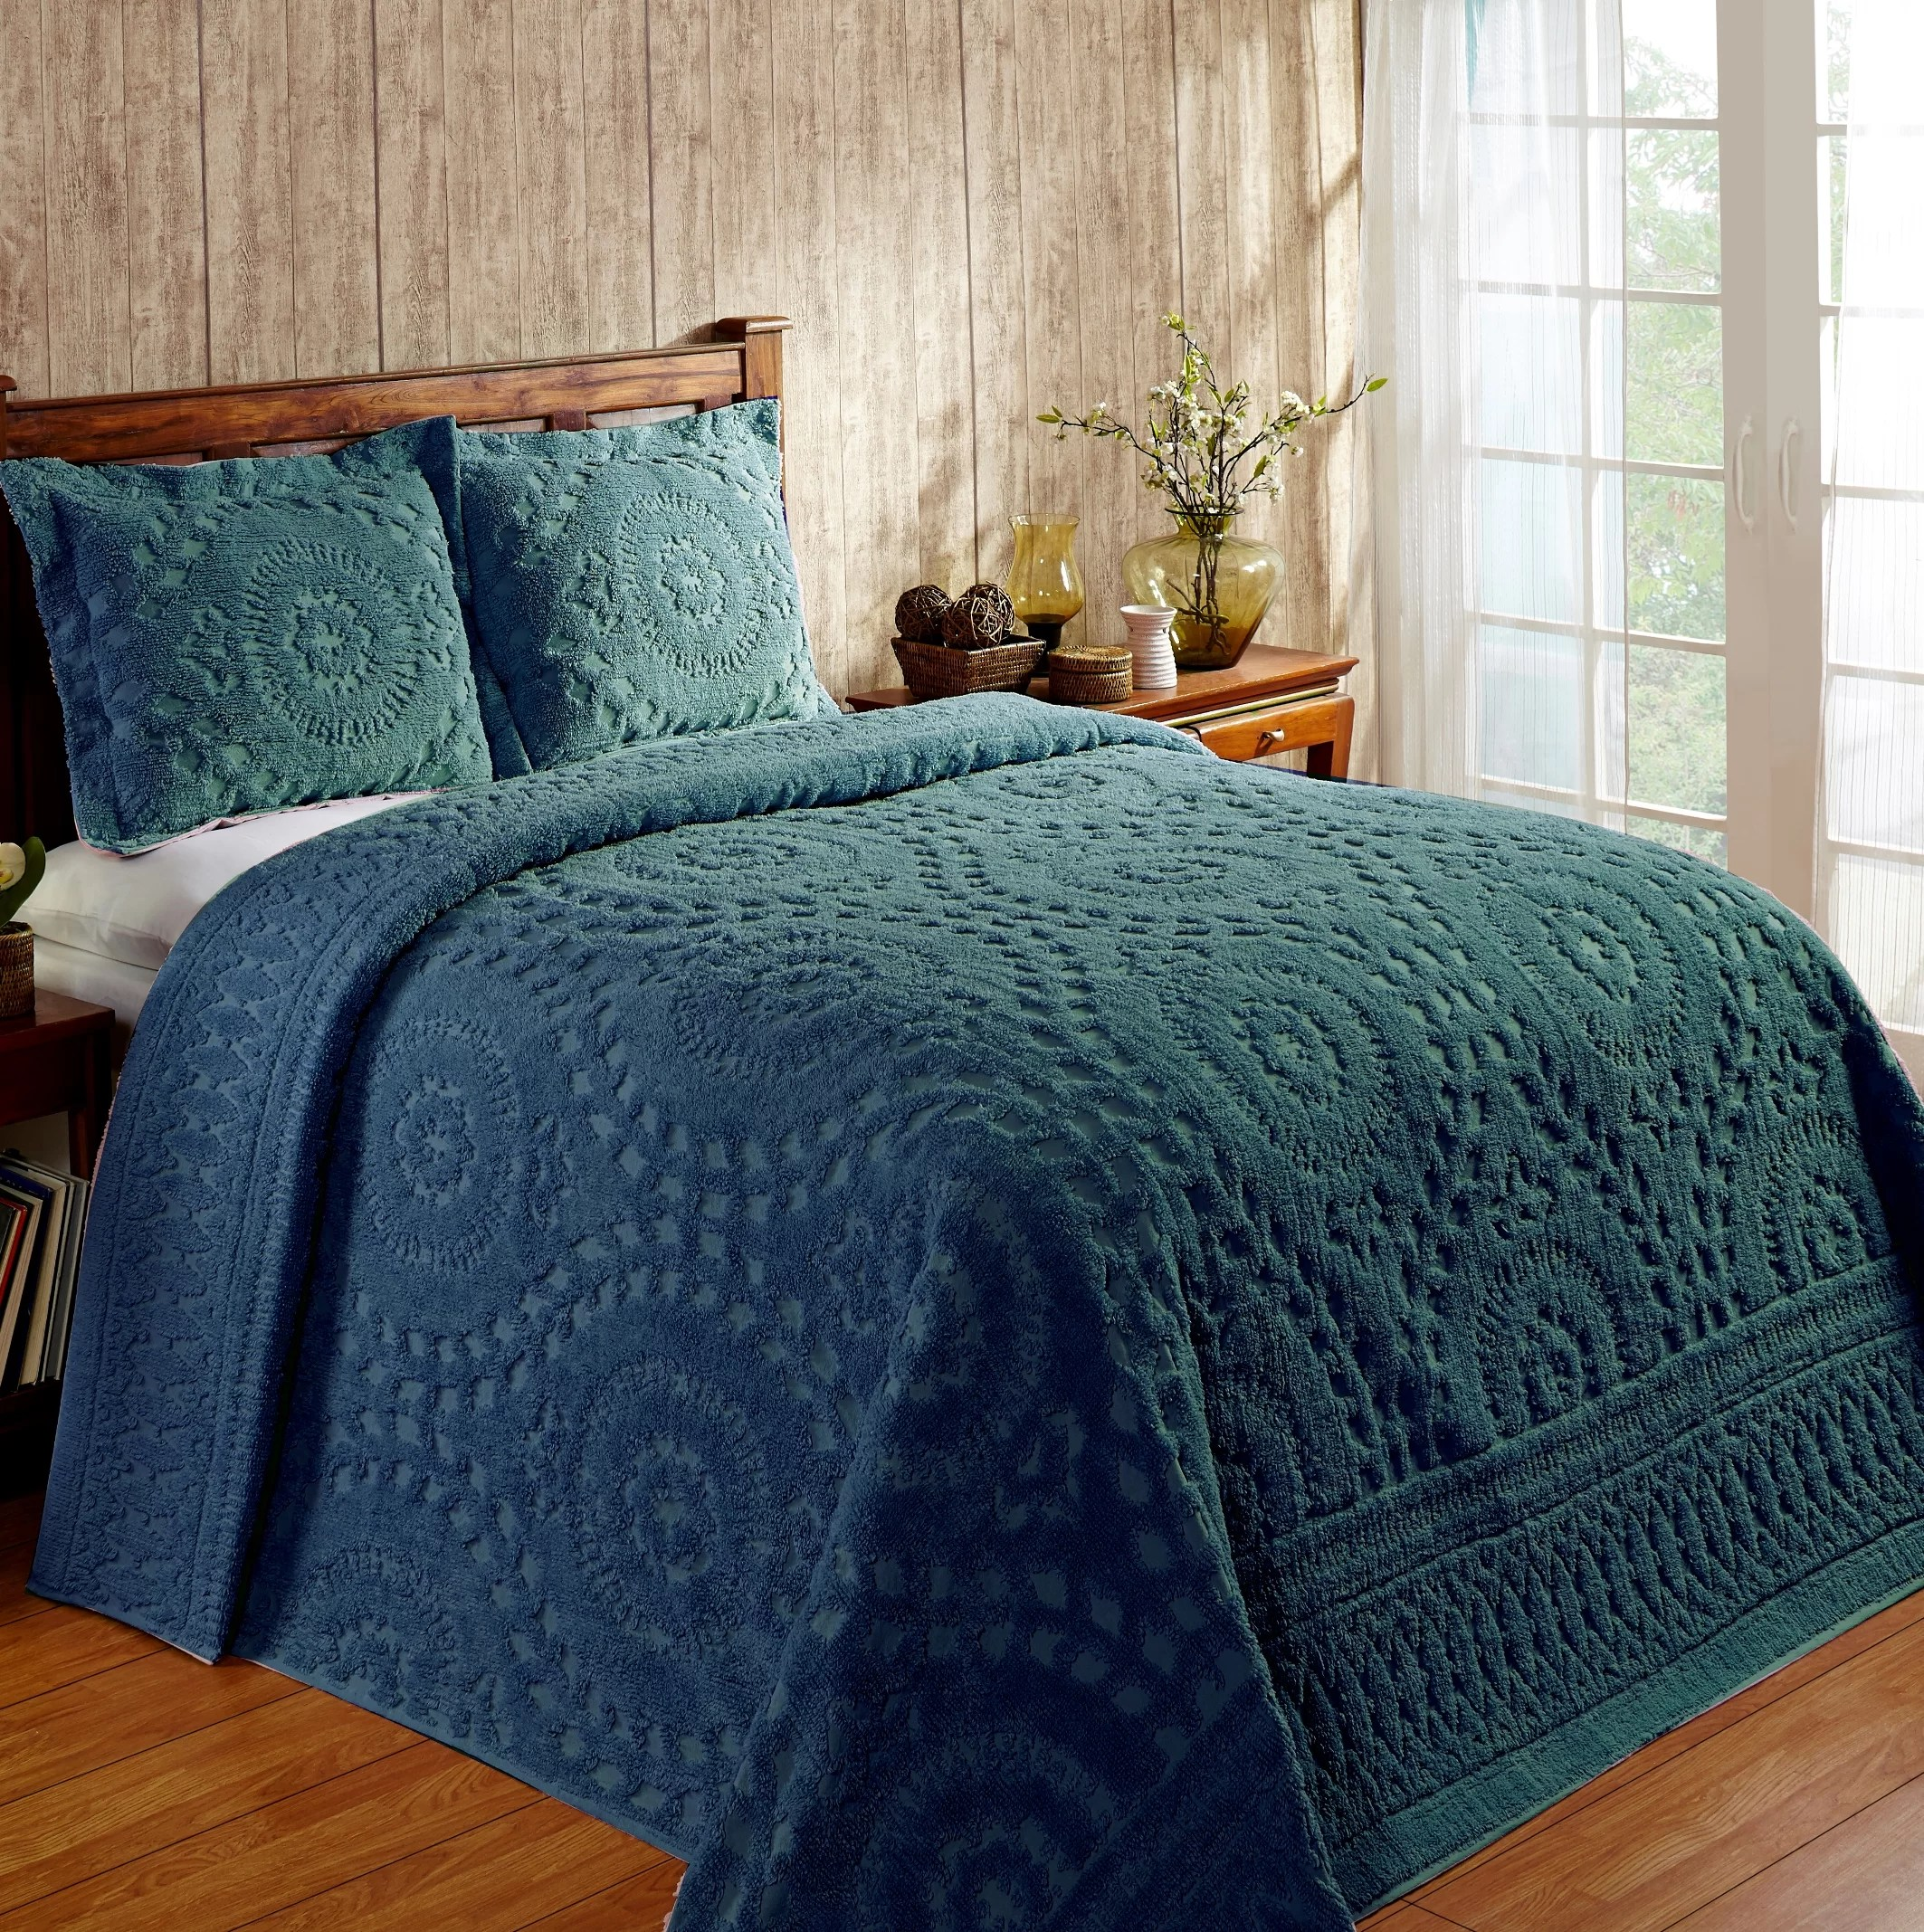 Single Coverlet Imai Single Coverlet